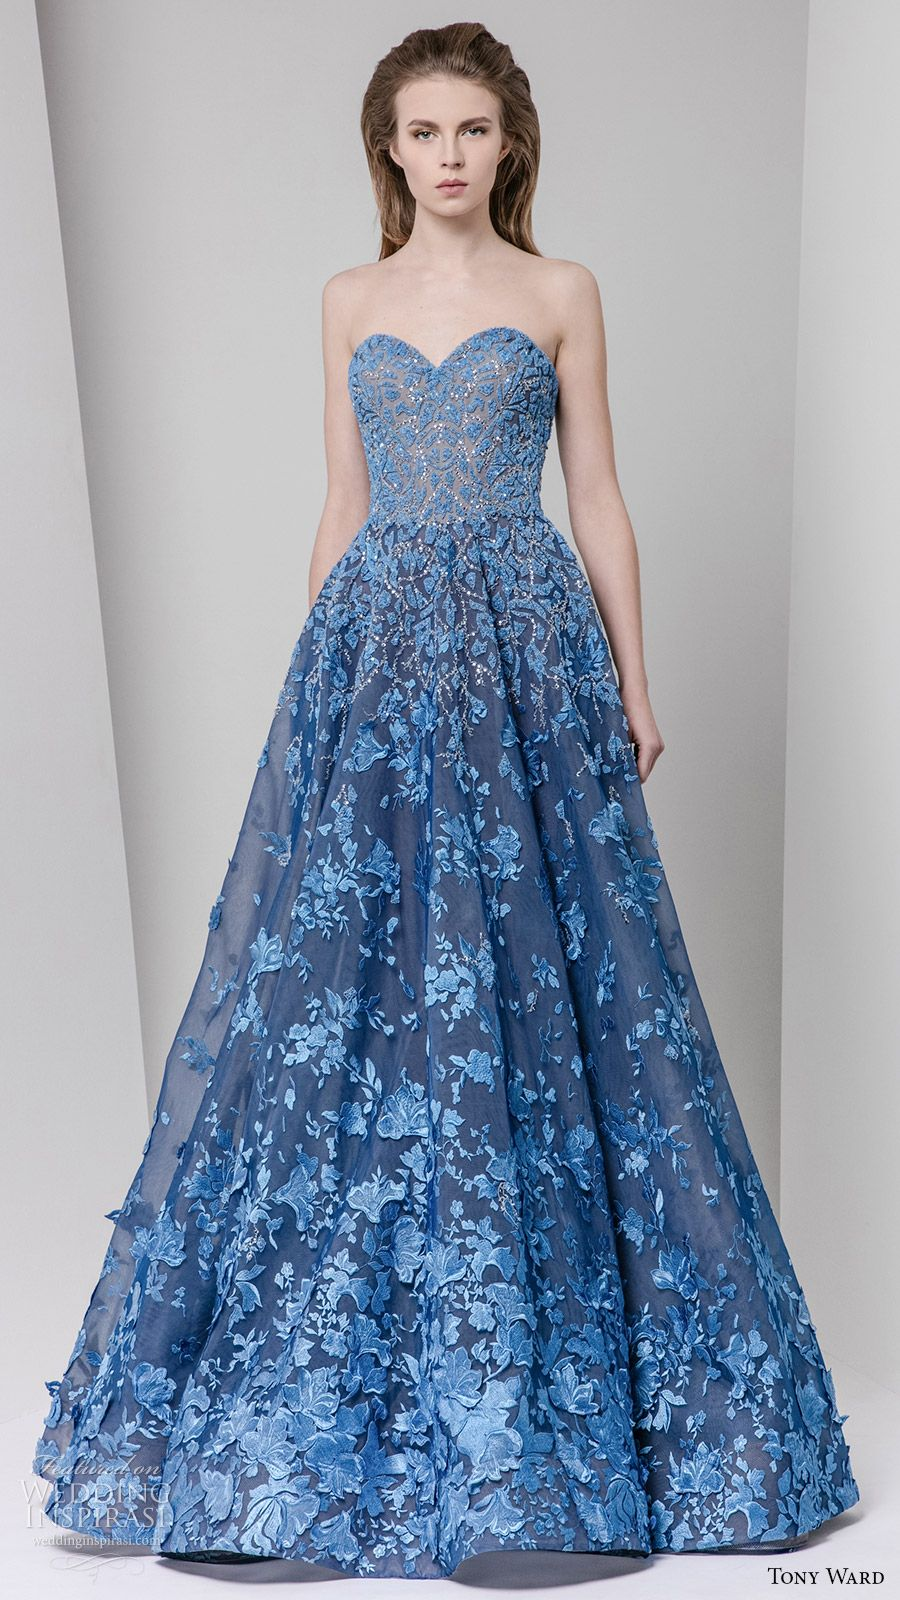 Tony Ward Fall 2016 Ready-to-Wear Dresses | Fall 2016, Gowns and Prom